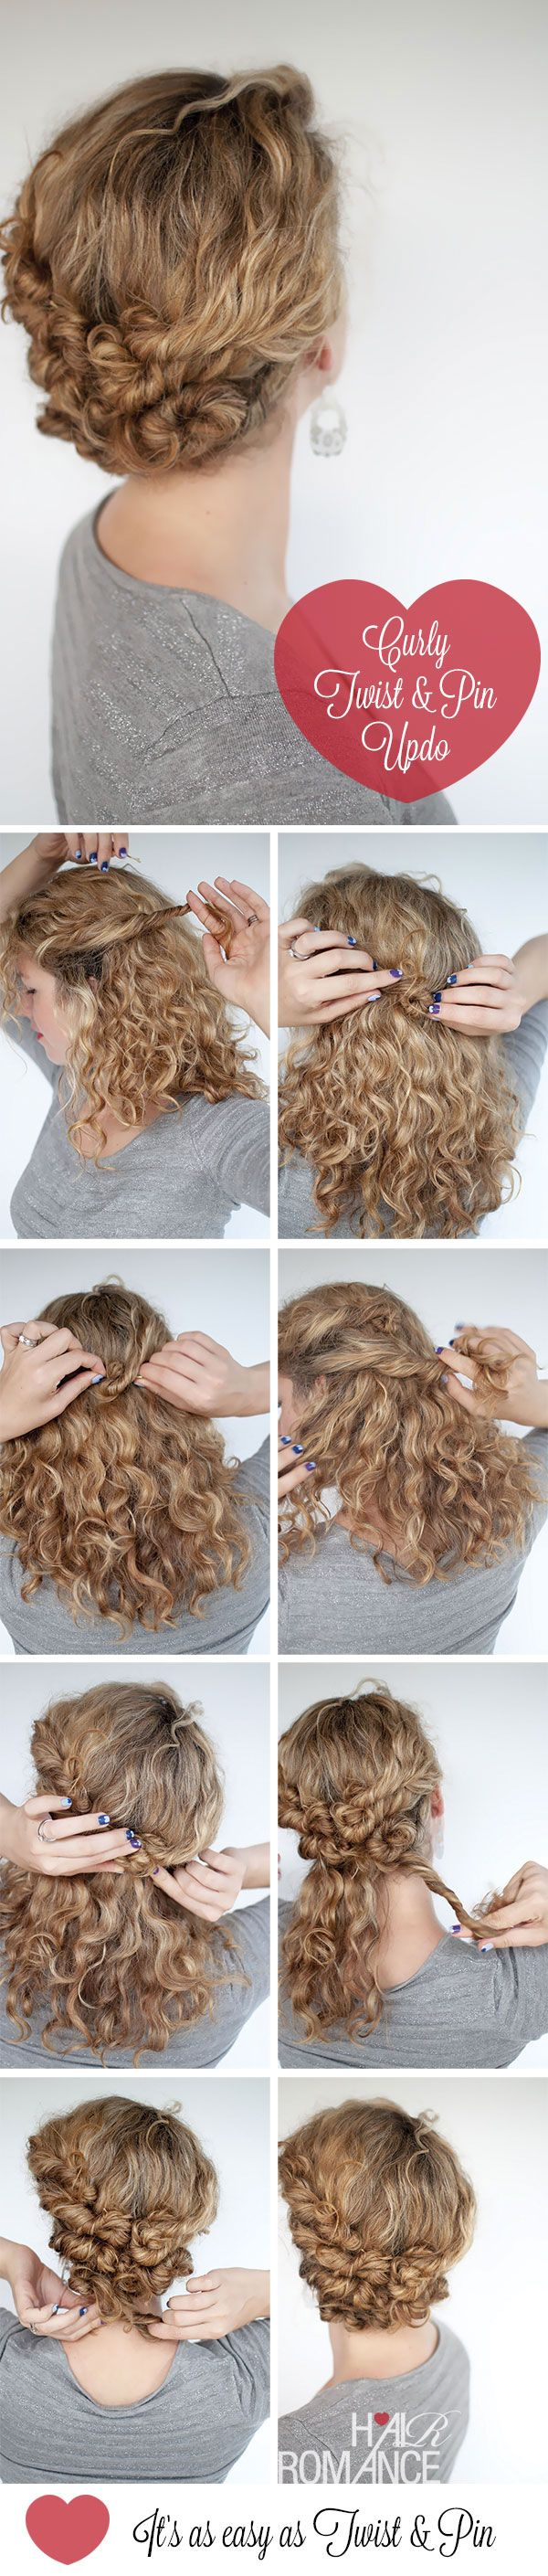 Curly hair style curly furly hayesh pinterest hair romance